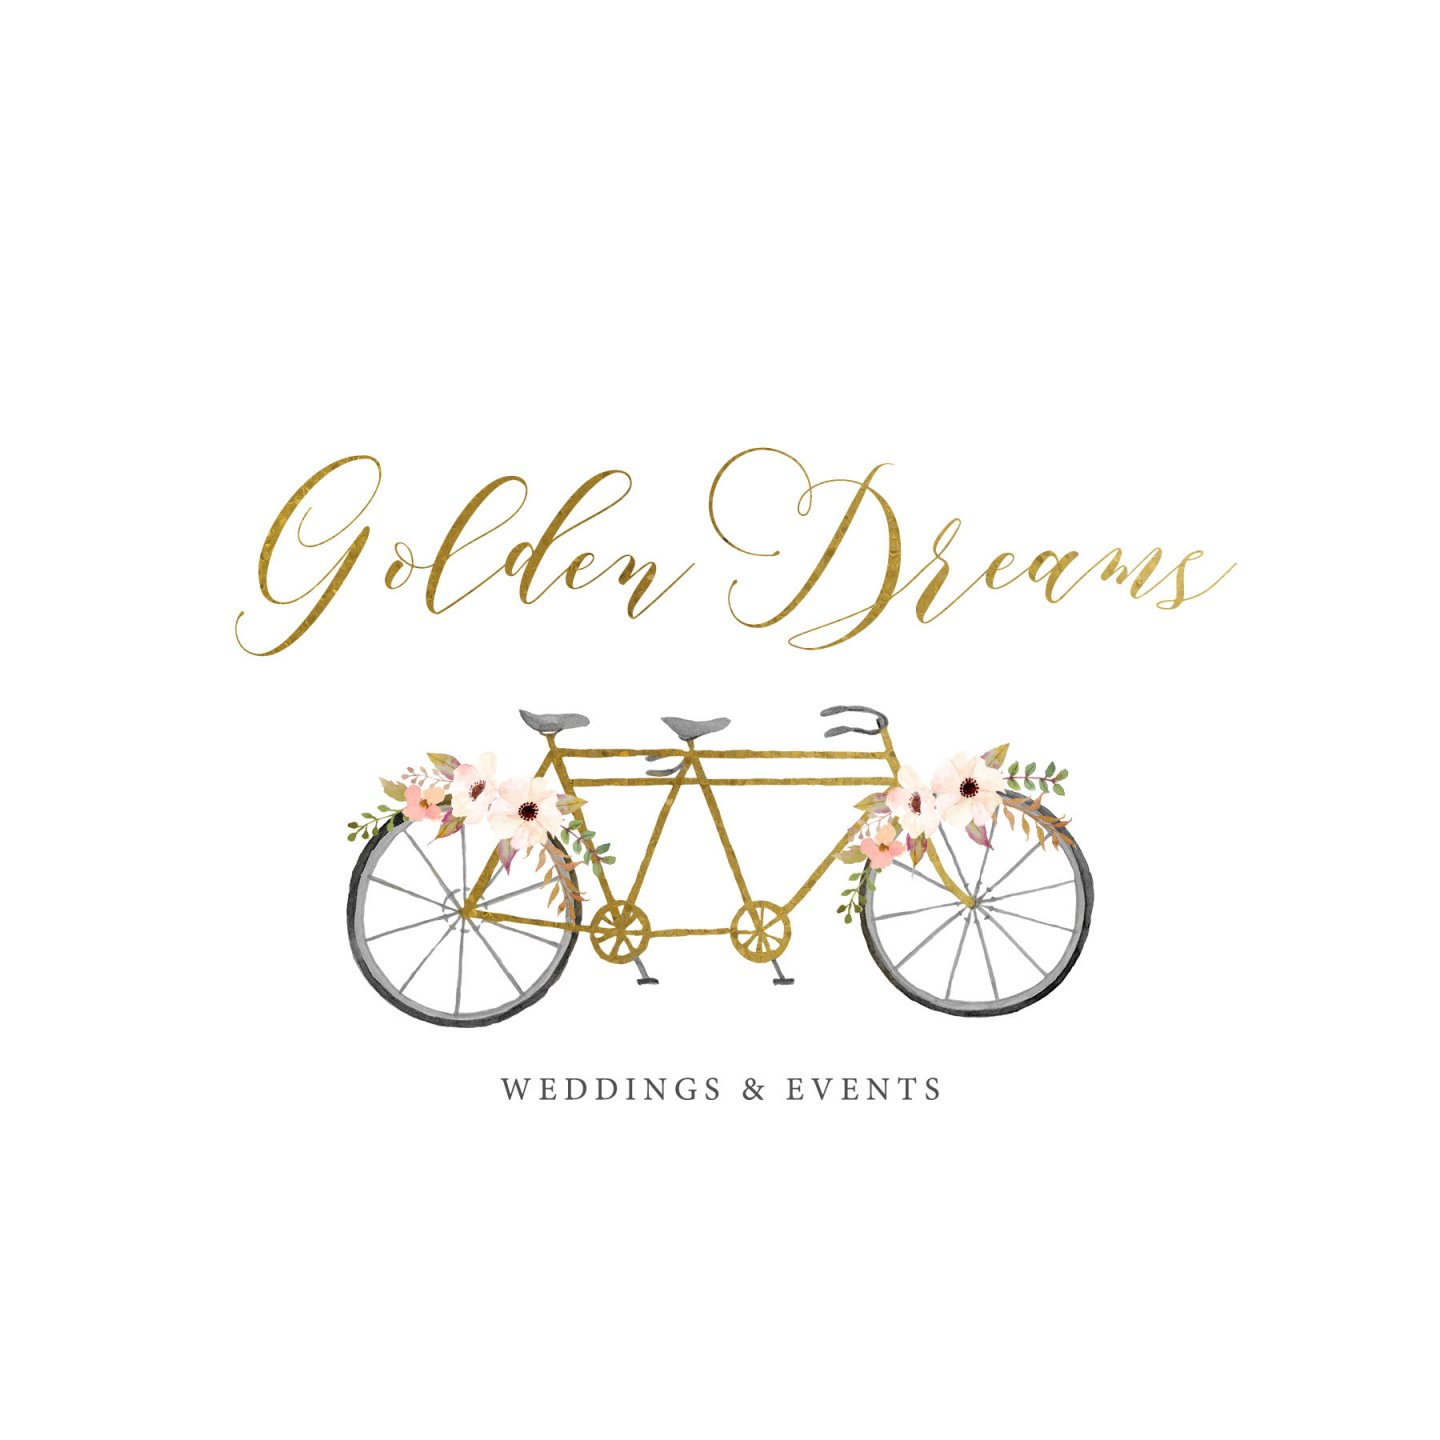 Golden Dreams Weddings and Events